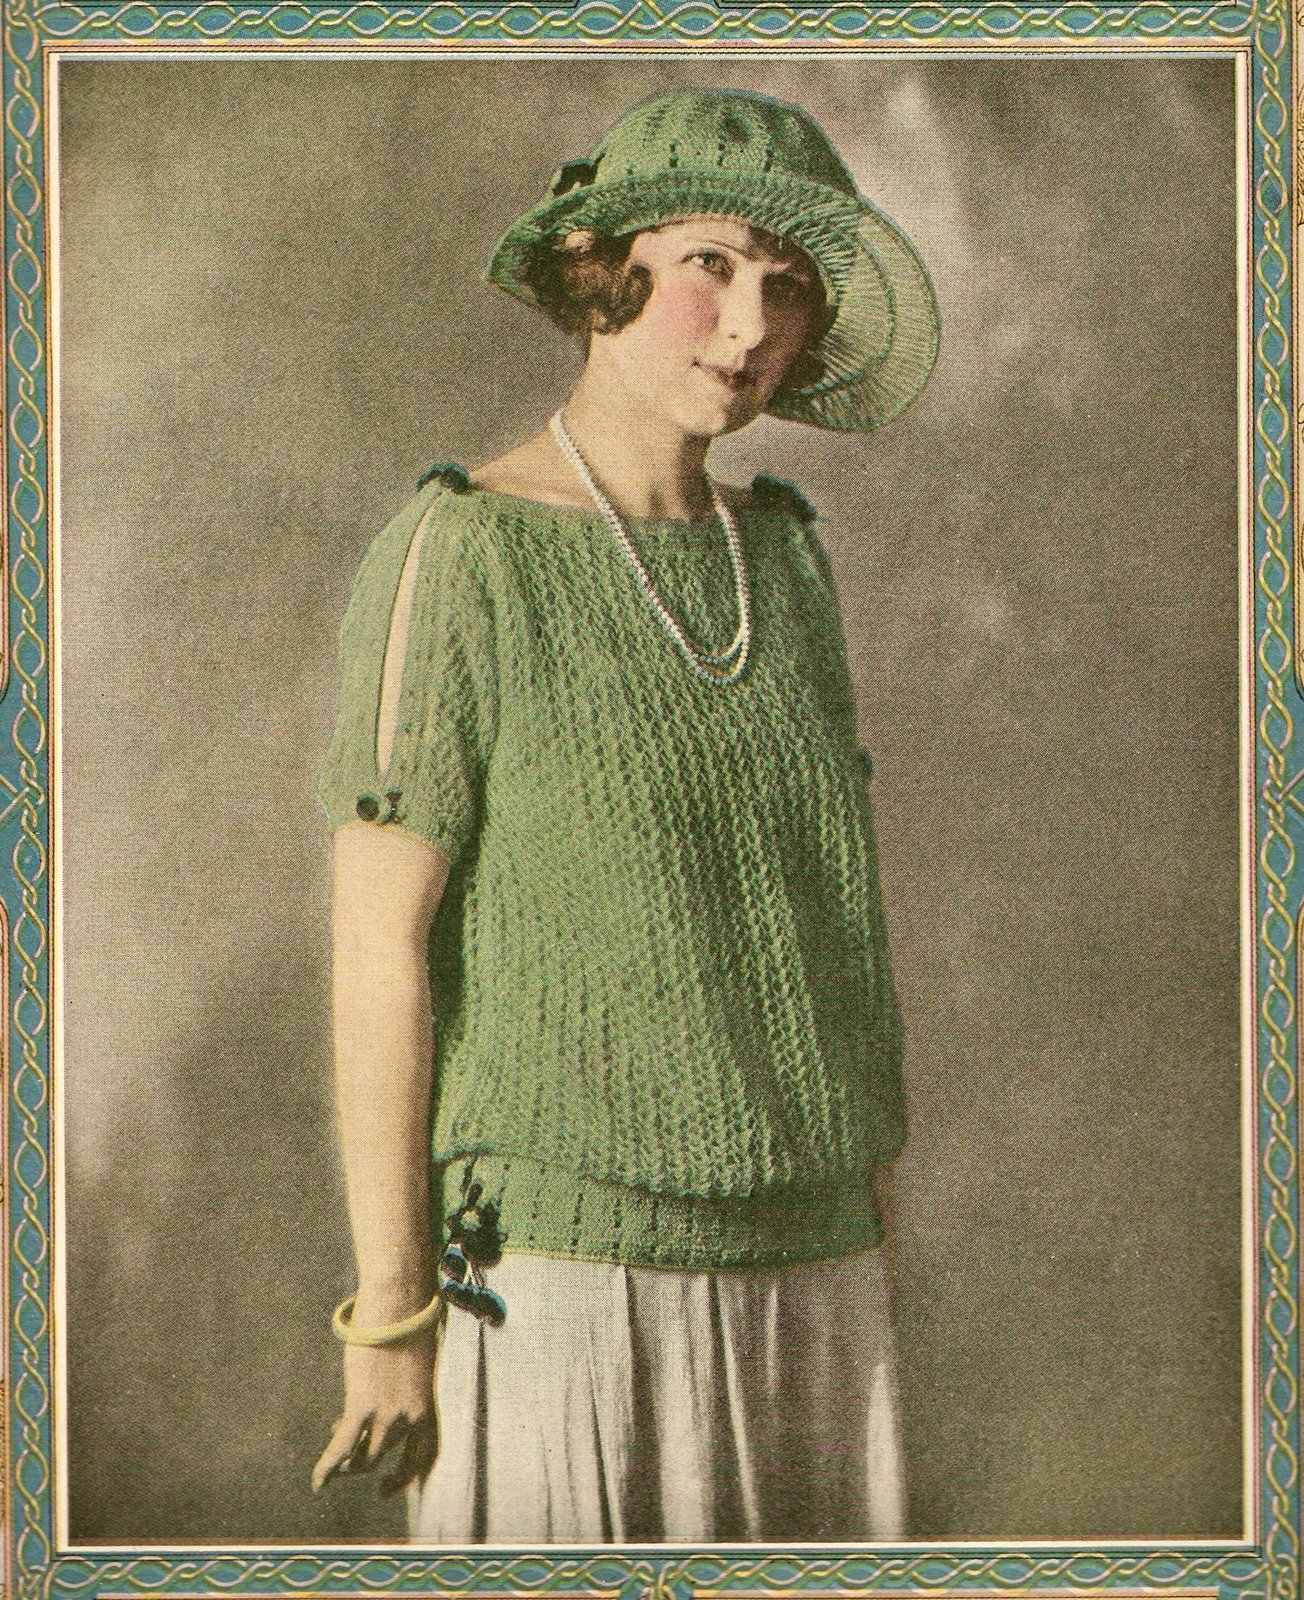 The Vintage Pattern Files: 1920's Knitting - A Summer Sweater